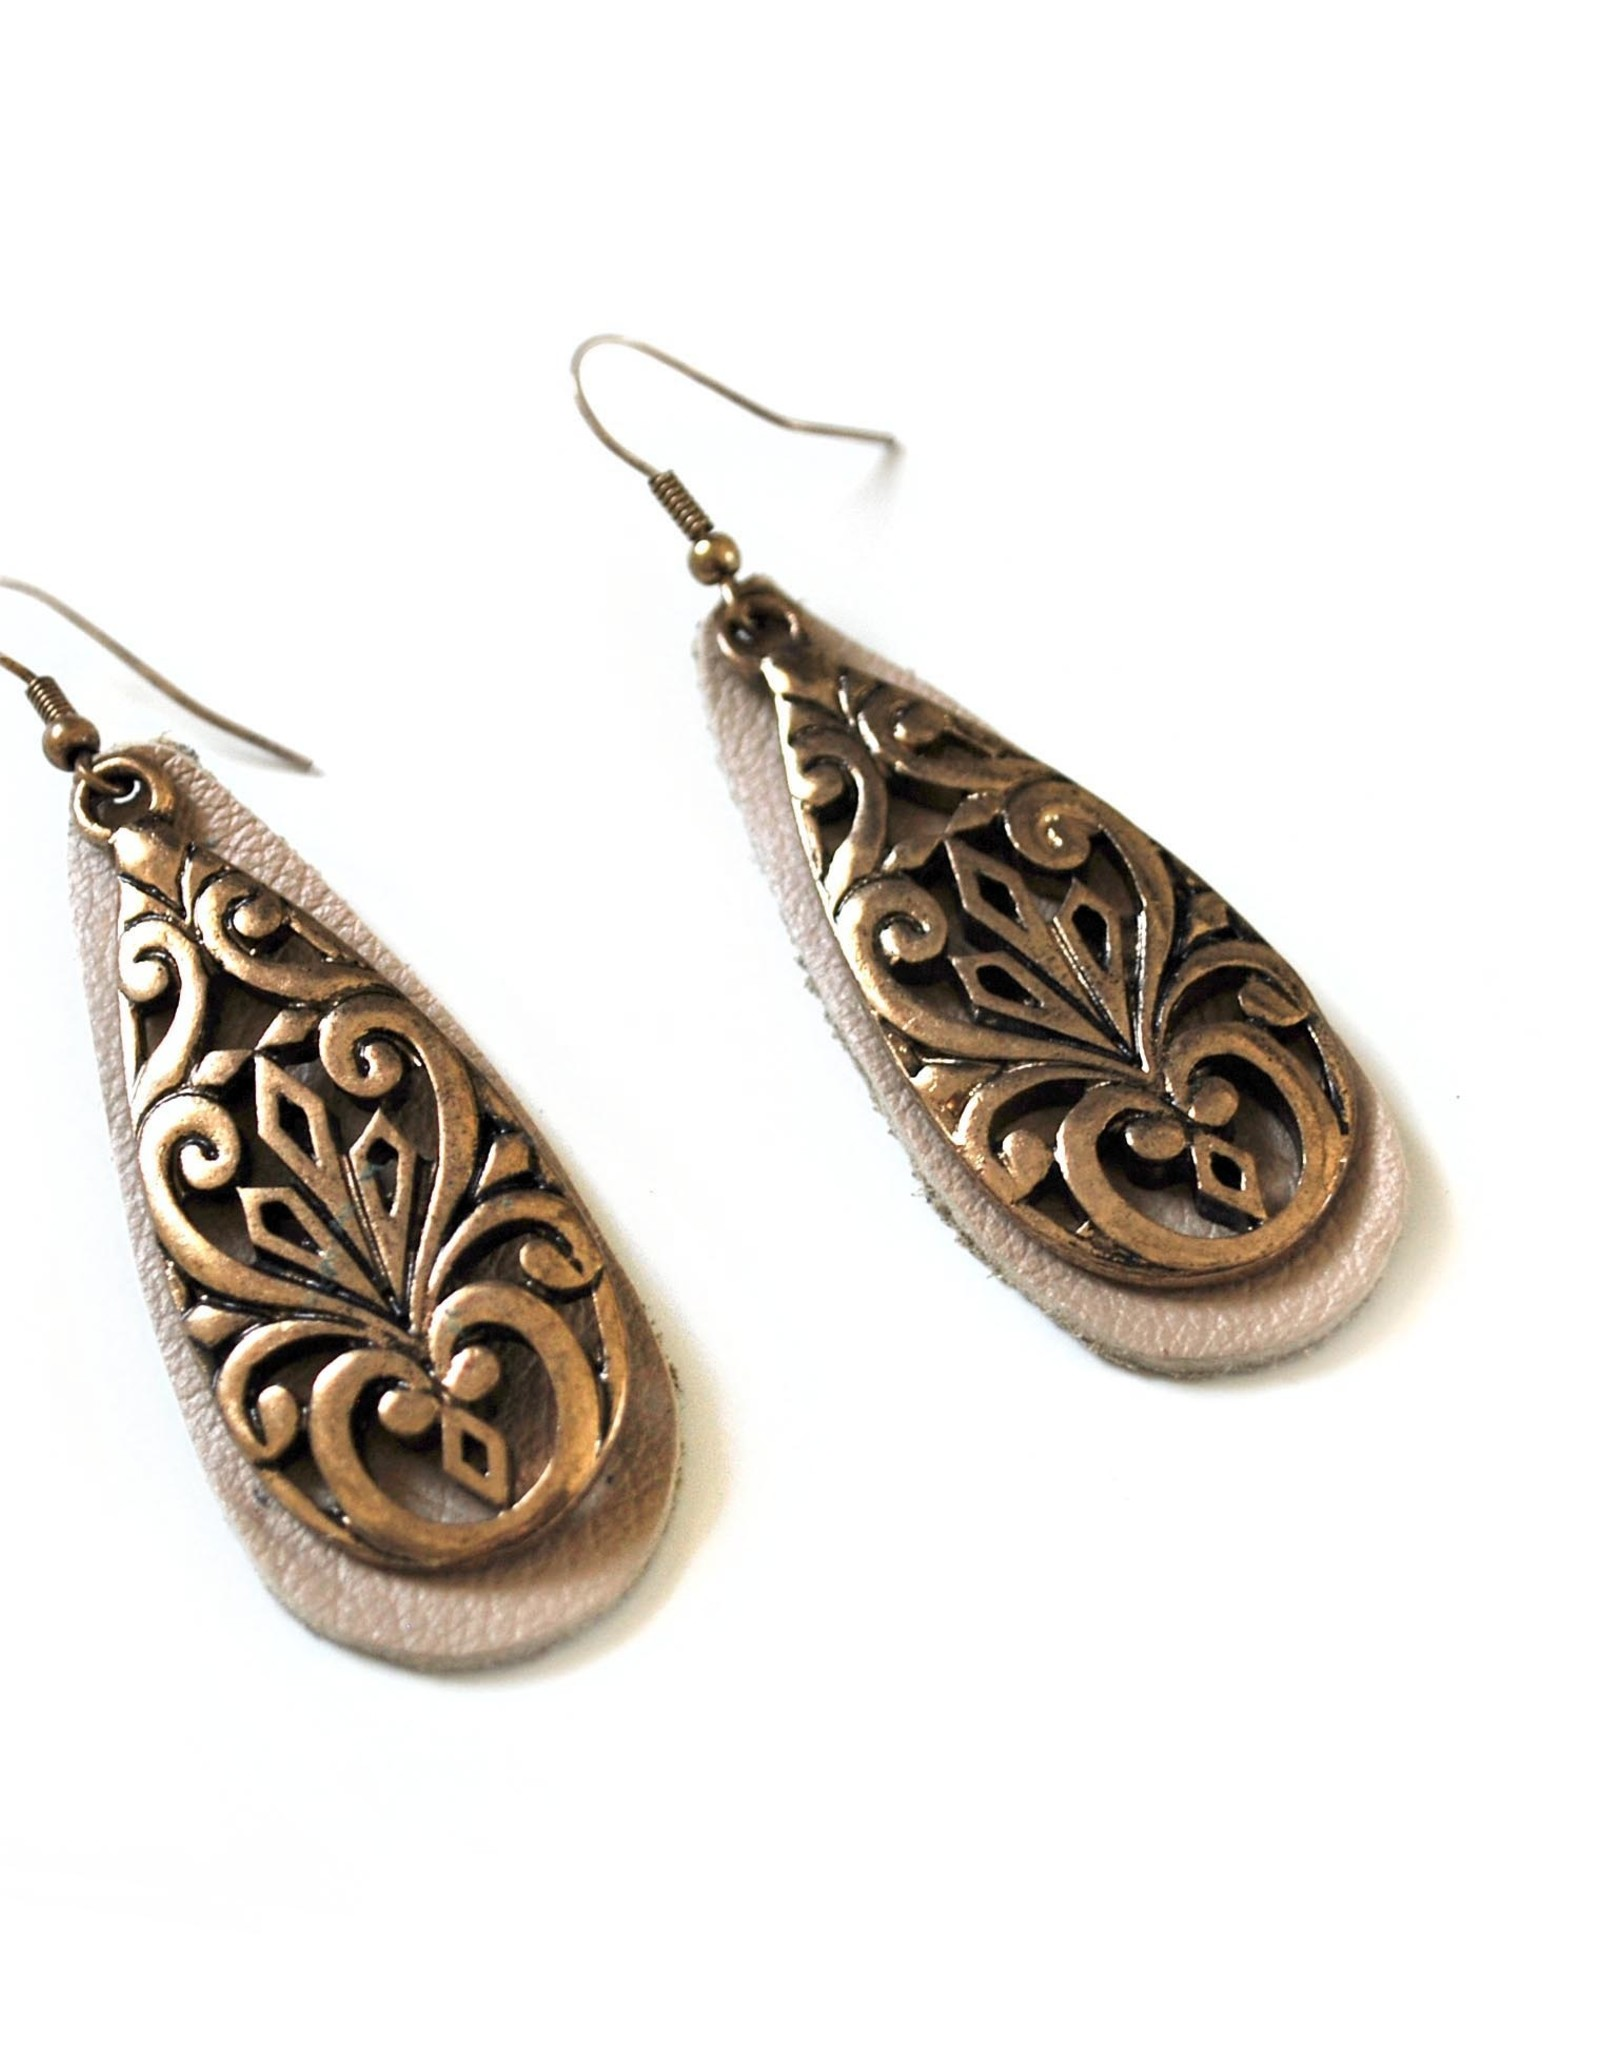 Upcycled Leather Earrings with metal by Eva Airam Studio